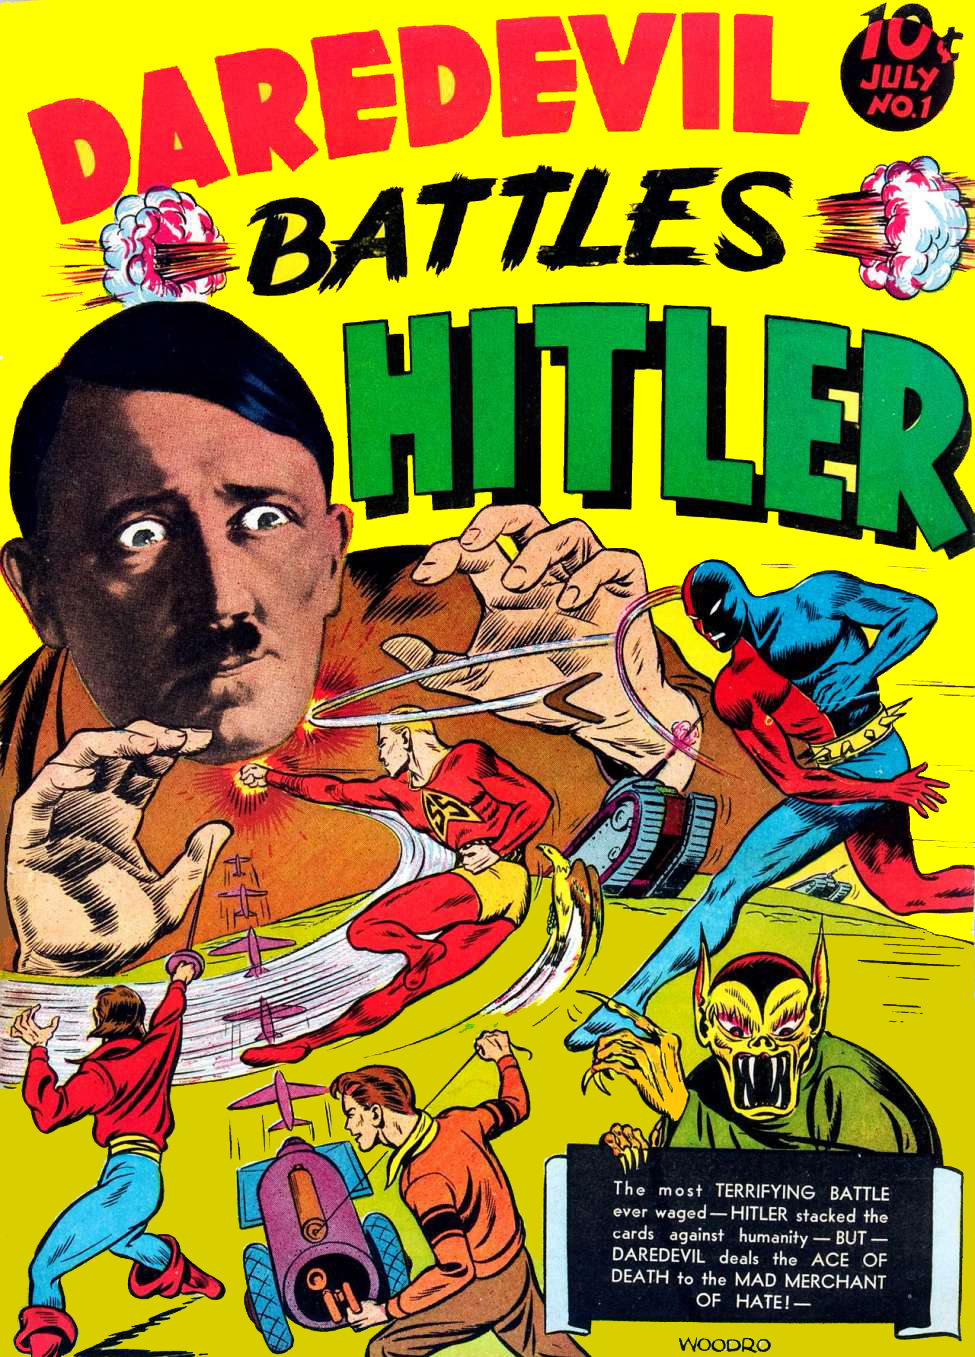 Comic Book Cover, 1941